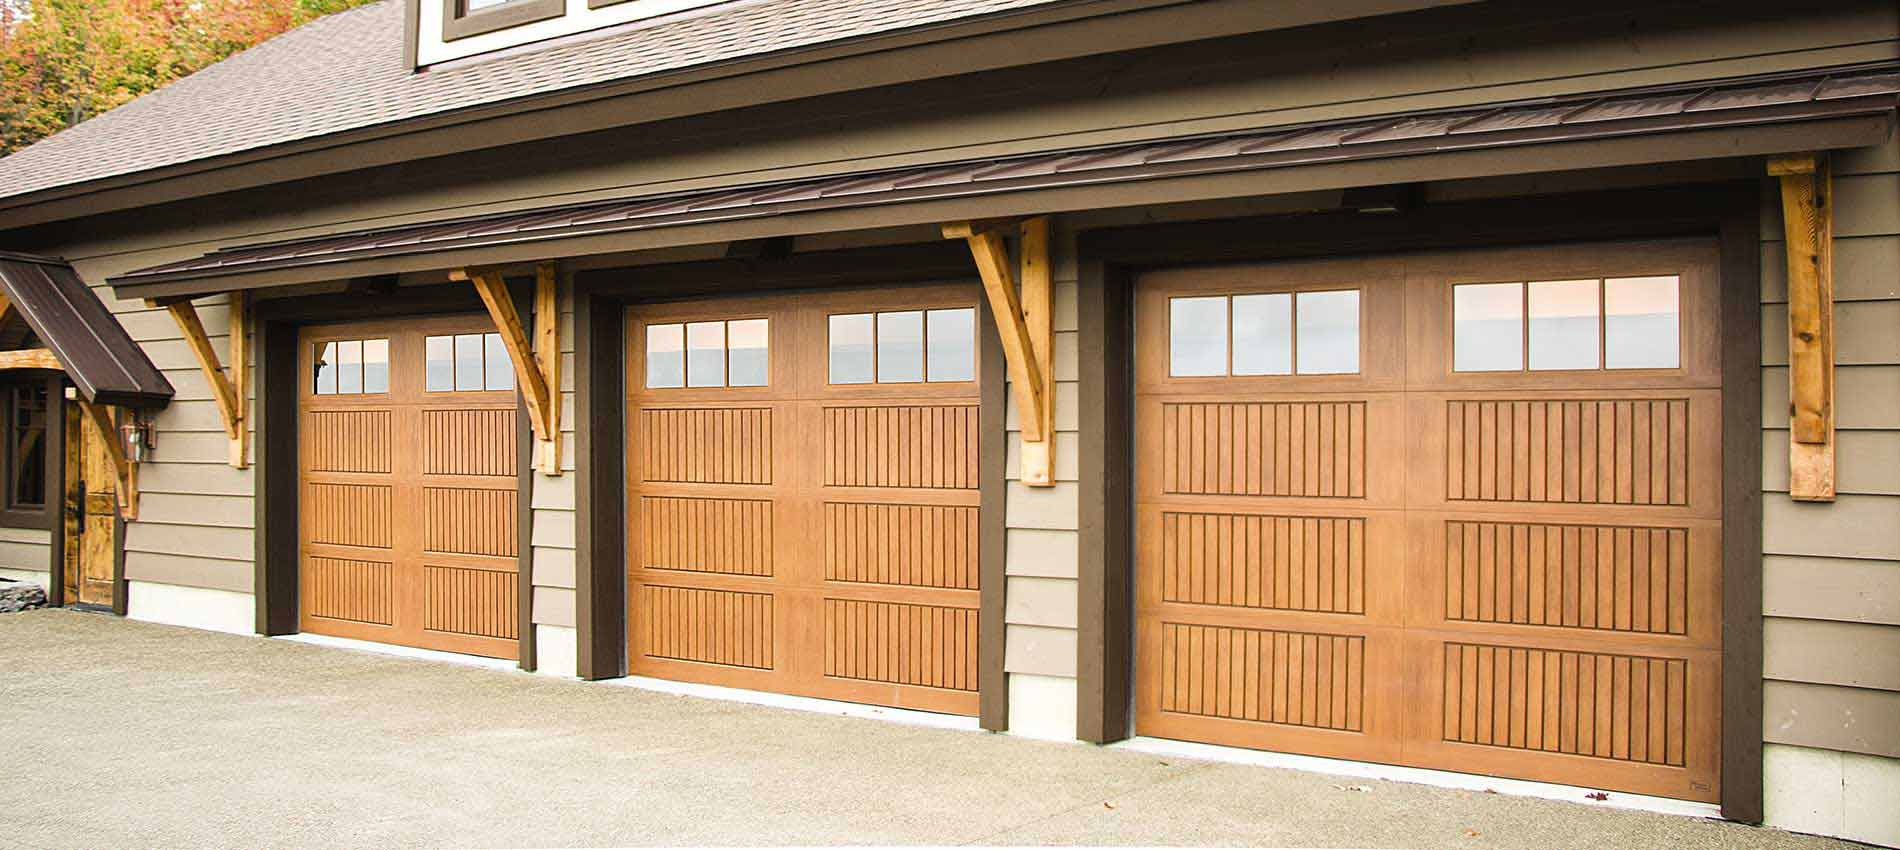 garage centauri smartdoors introducing toronto doors custom modern maple glass company wholesale